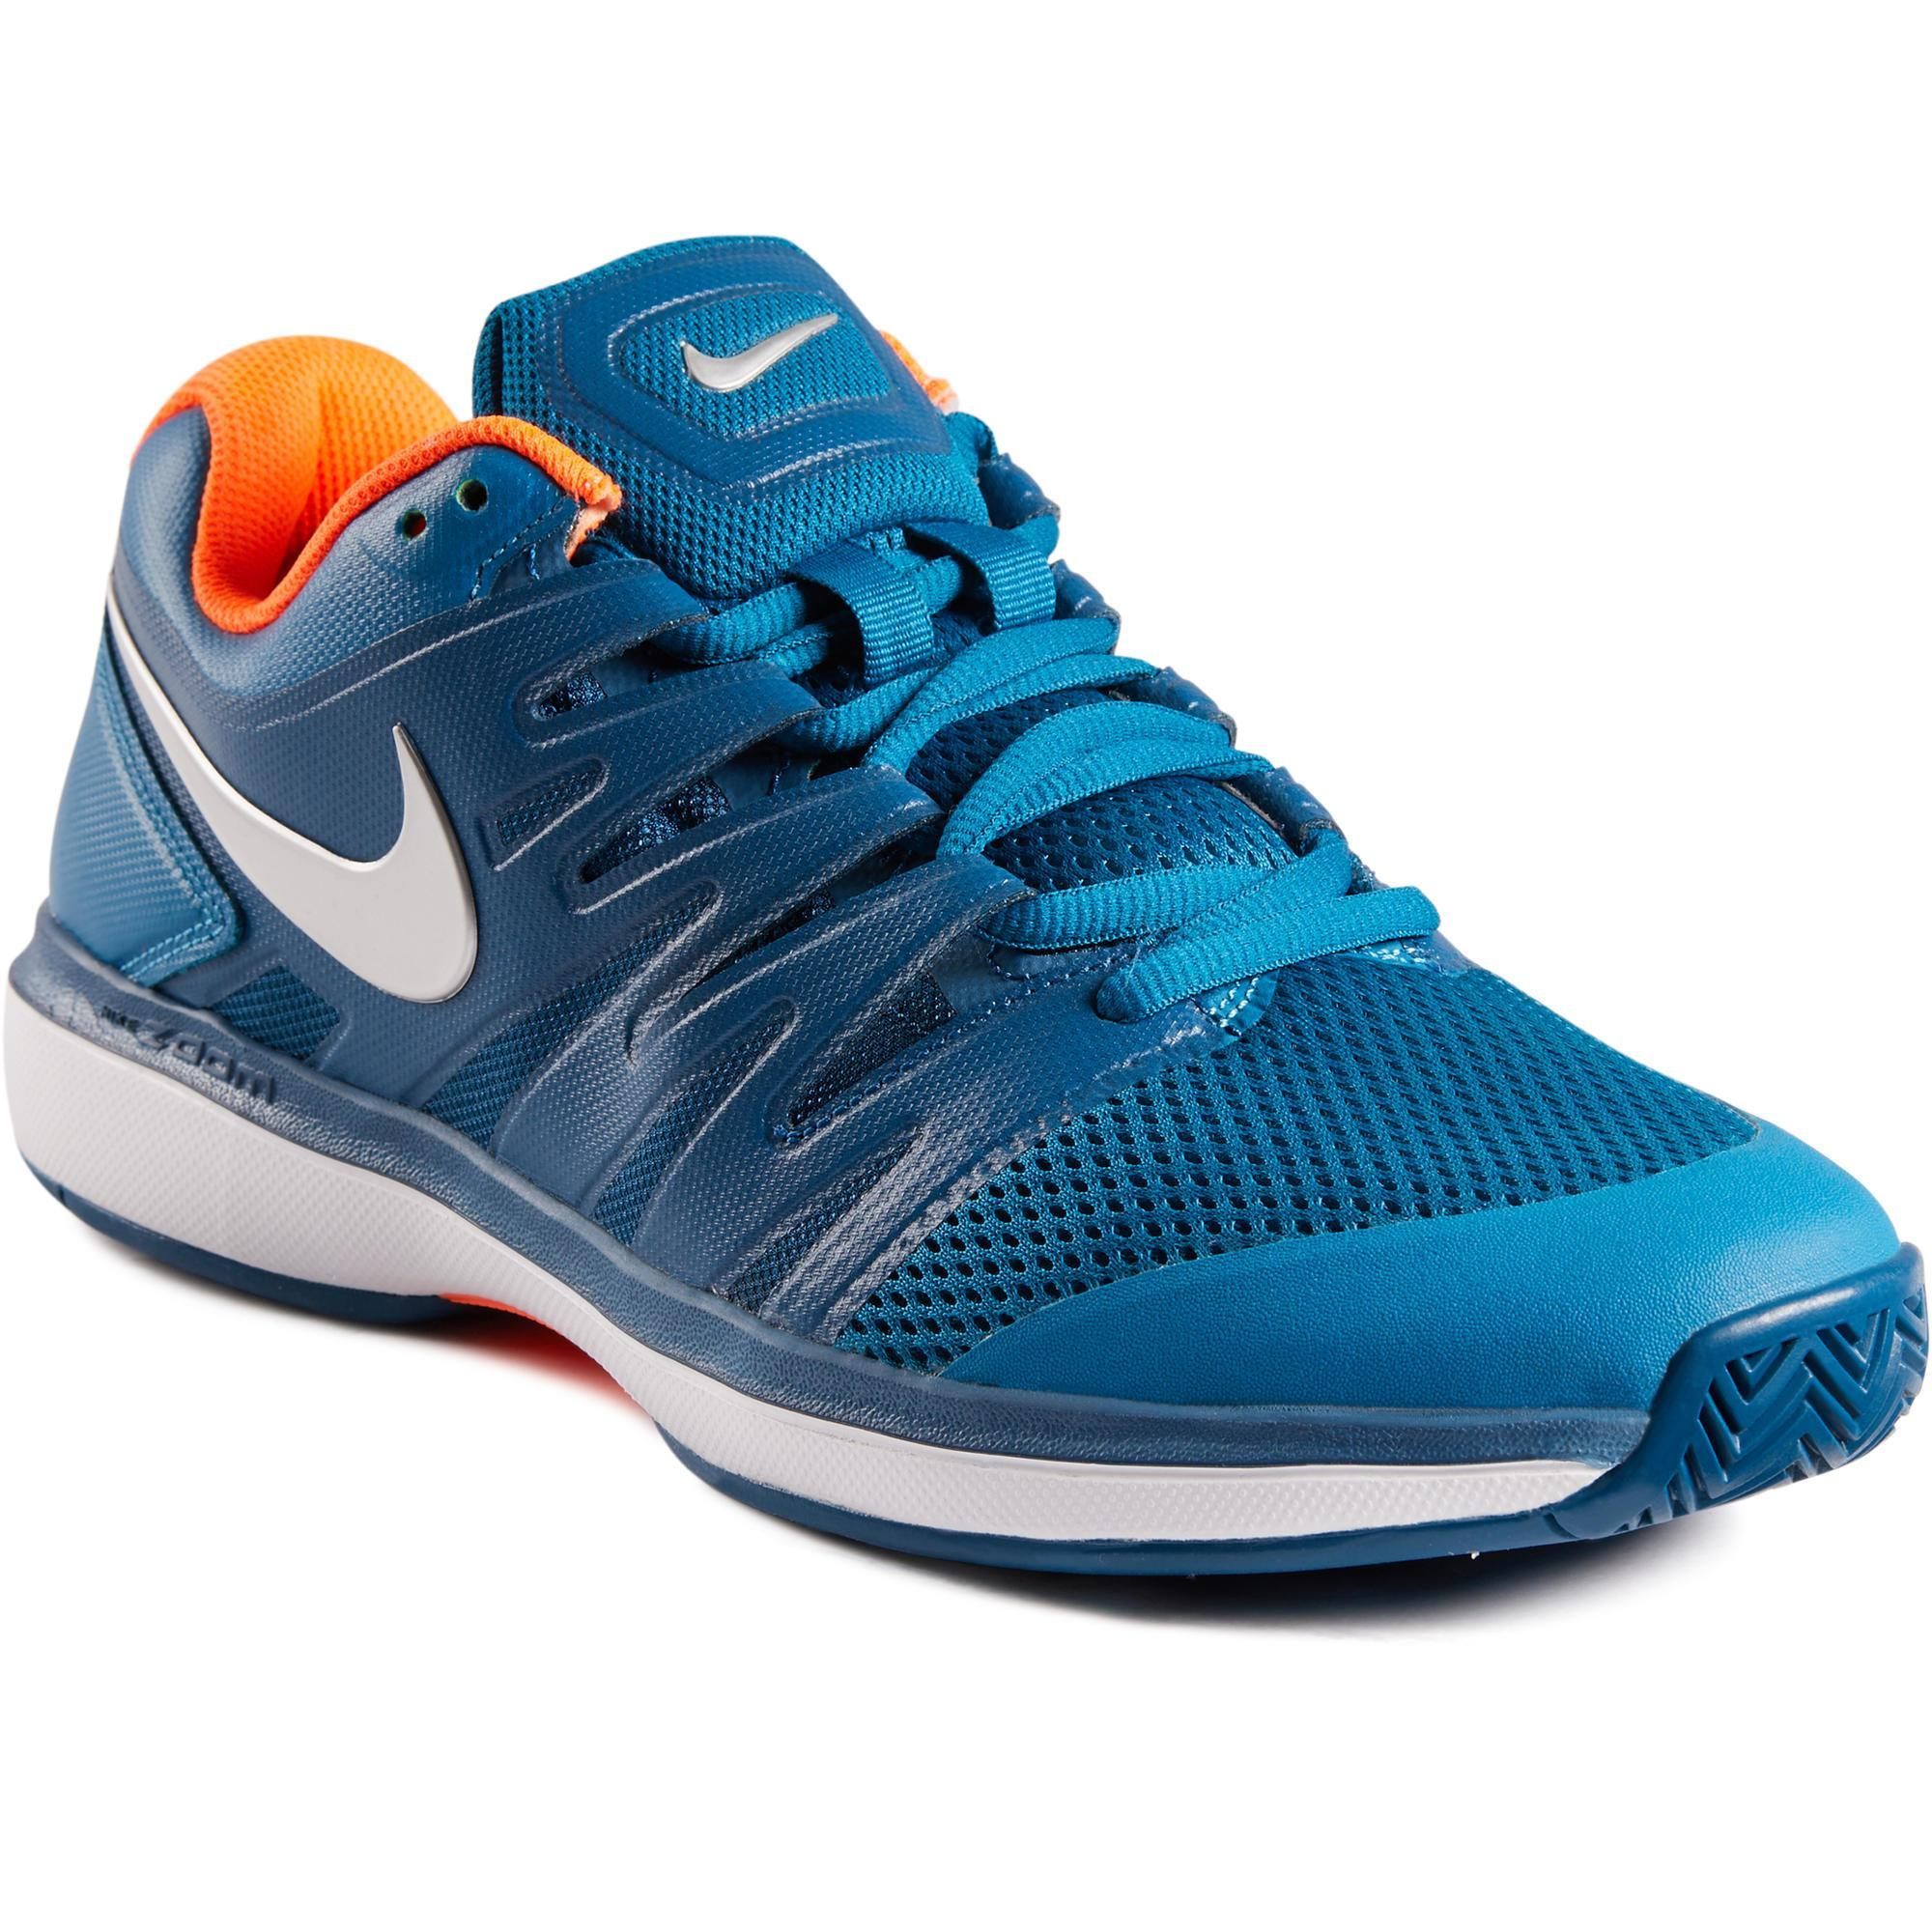 the cheapest uk availability authentic quality Zoom Chaussure Prestige HC BLEU Nike Decathlon TfqOaqx